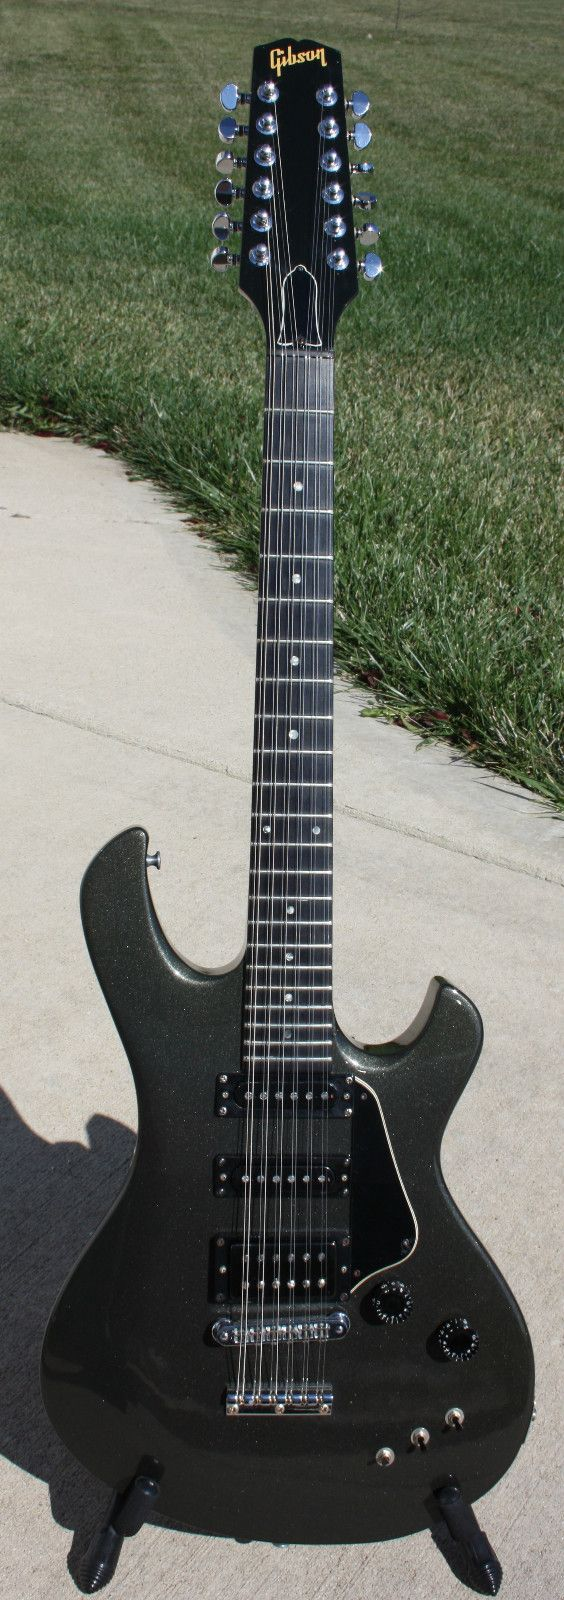 details about rare vintage 60s conrad 12 string electric guitar japan made awesome ex cond. Black Bedroom Furniture Sets. Home Design Ideas